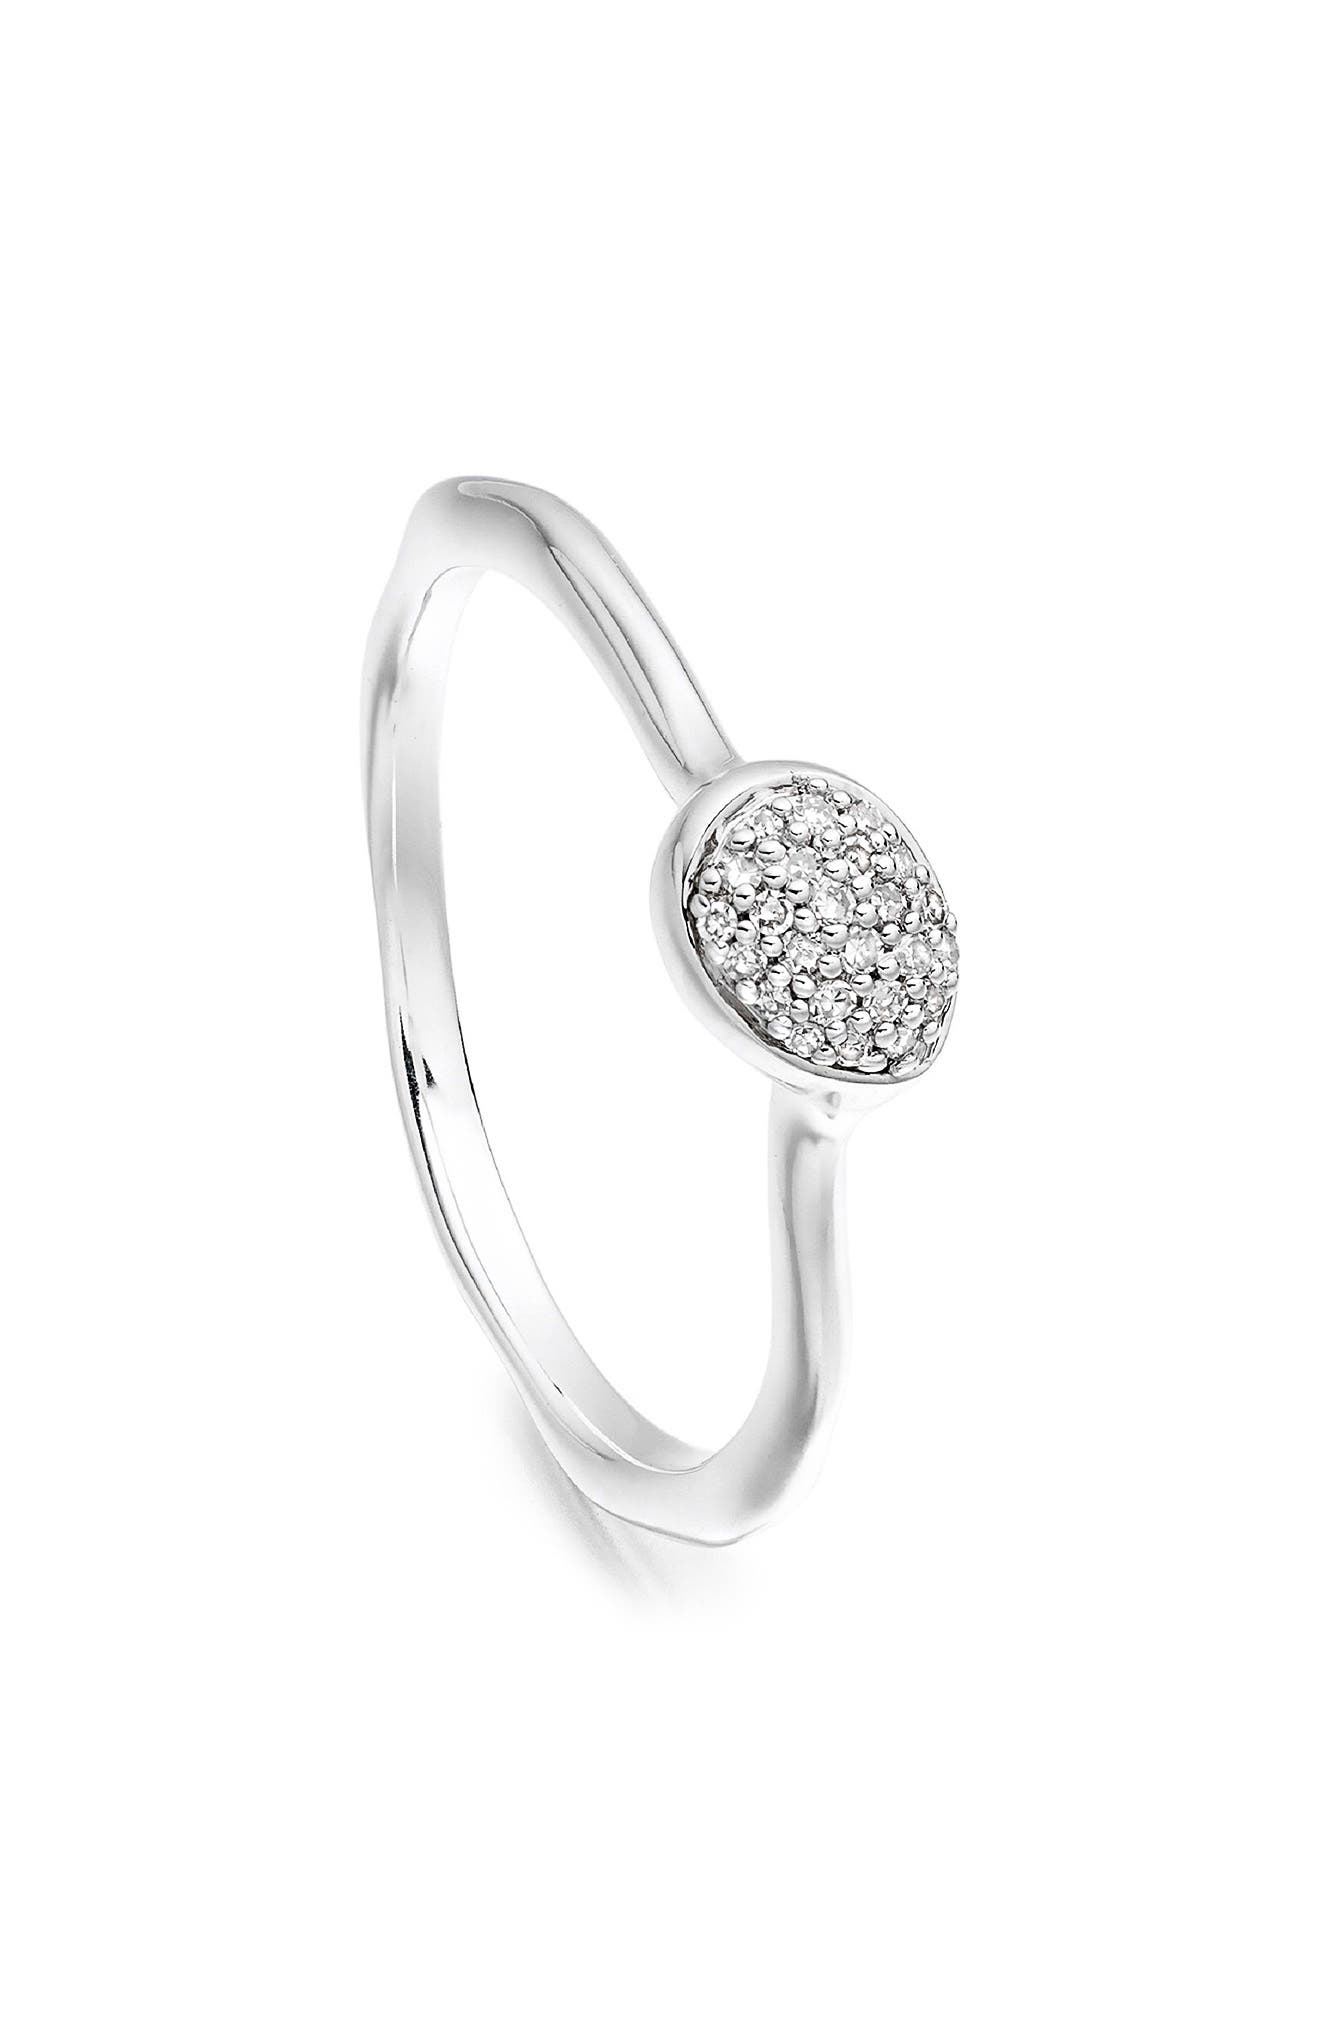 Siren Small Pavé Diamond Stacking Ring,                             Alternate thumbnail 2, color,                             SILVER/ DIAMOND